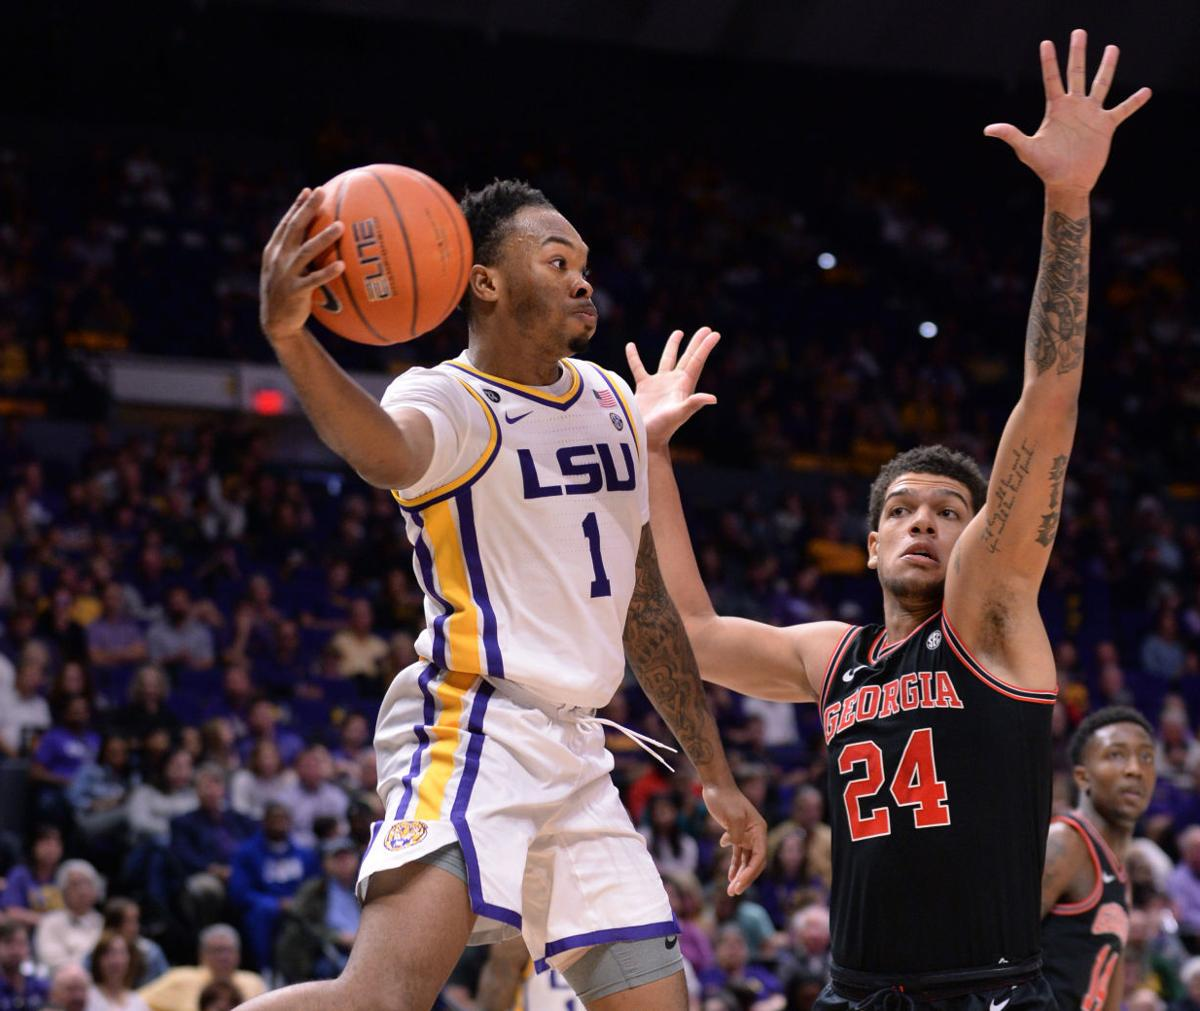 Lsu Basketball To Host Texas Tech In Eighth Annual Big 12 Sec Challenge On Jan 30 Lsu Theadvocate Com